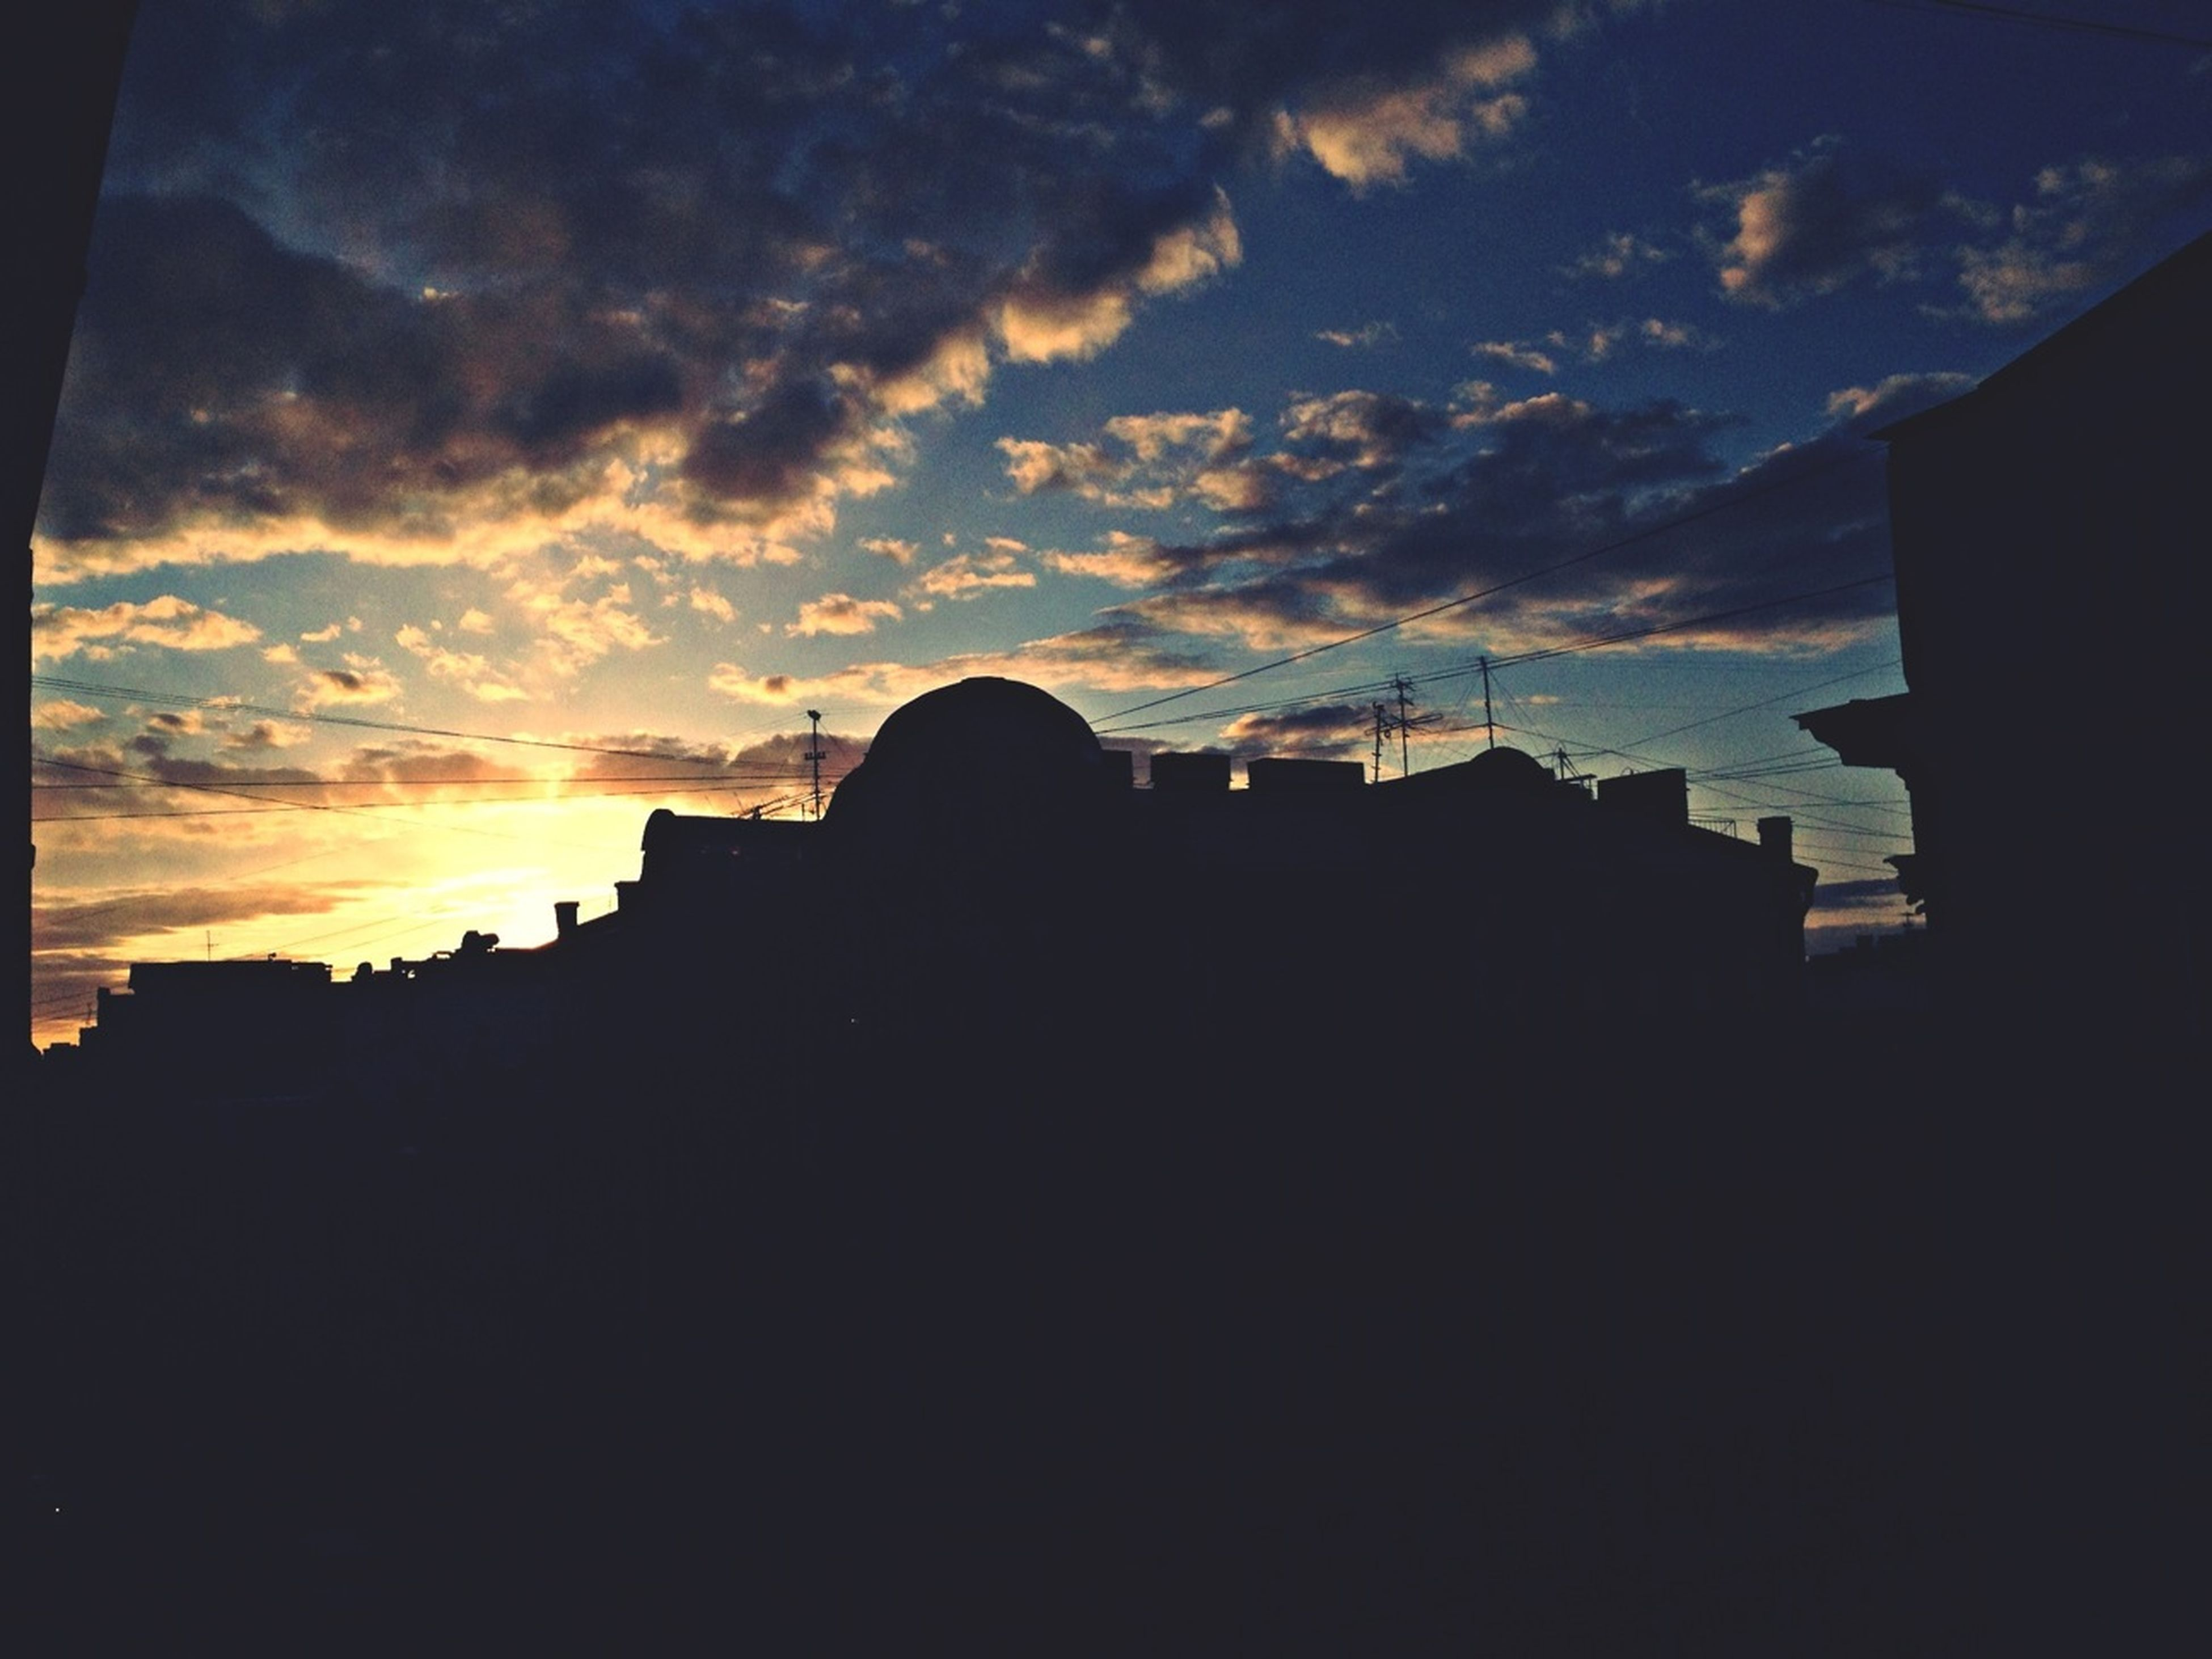 building exterior, architecture, sunset, silhouette, built structure, sky, cloud - sky, residential structure, cloud, house, residential building, building, city, dark, orange color, dusk, cloudy, outline, dramatic sky, outdoors